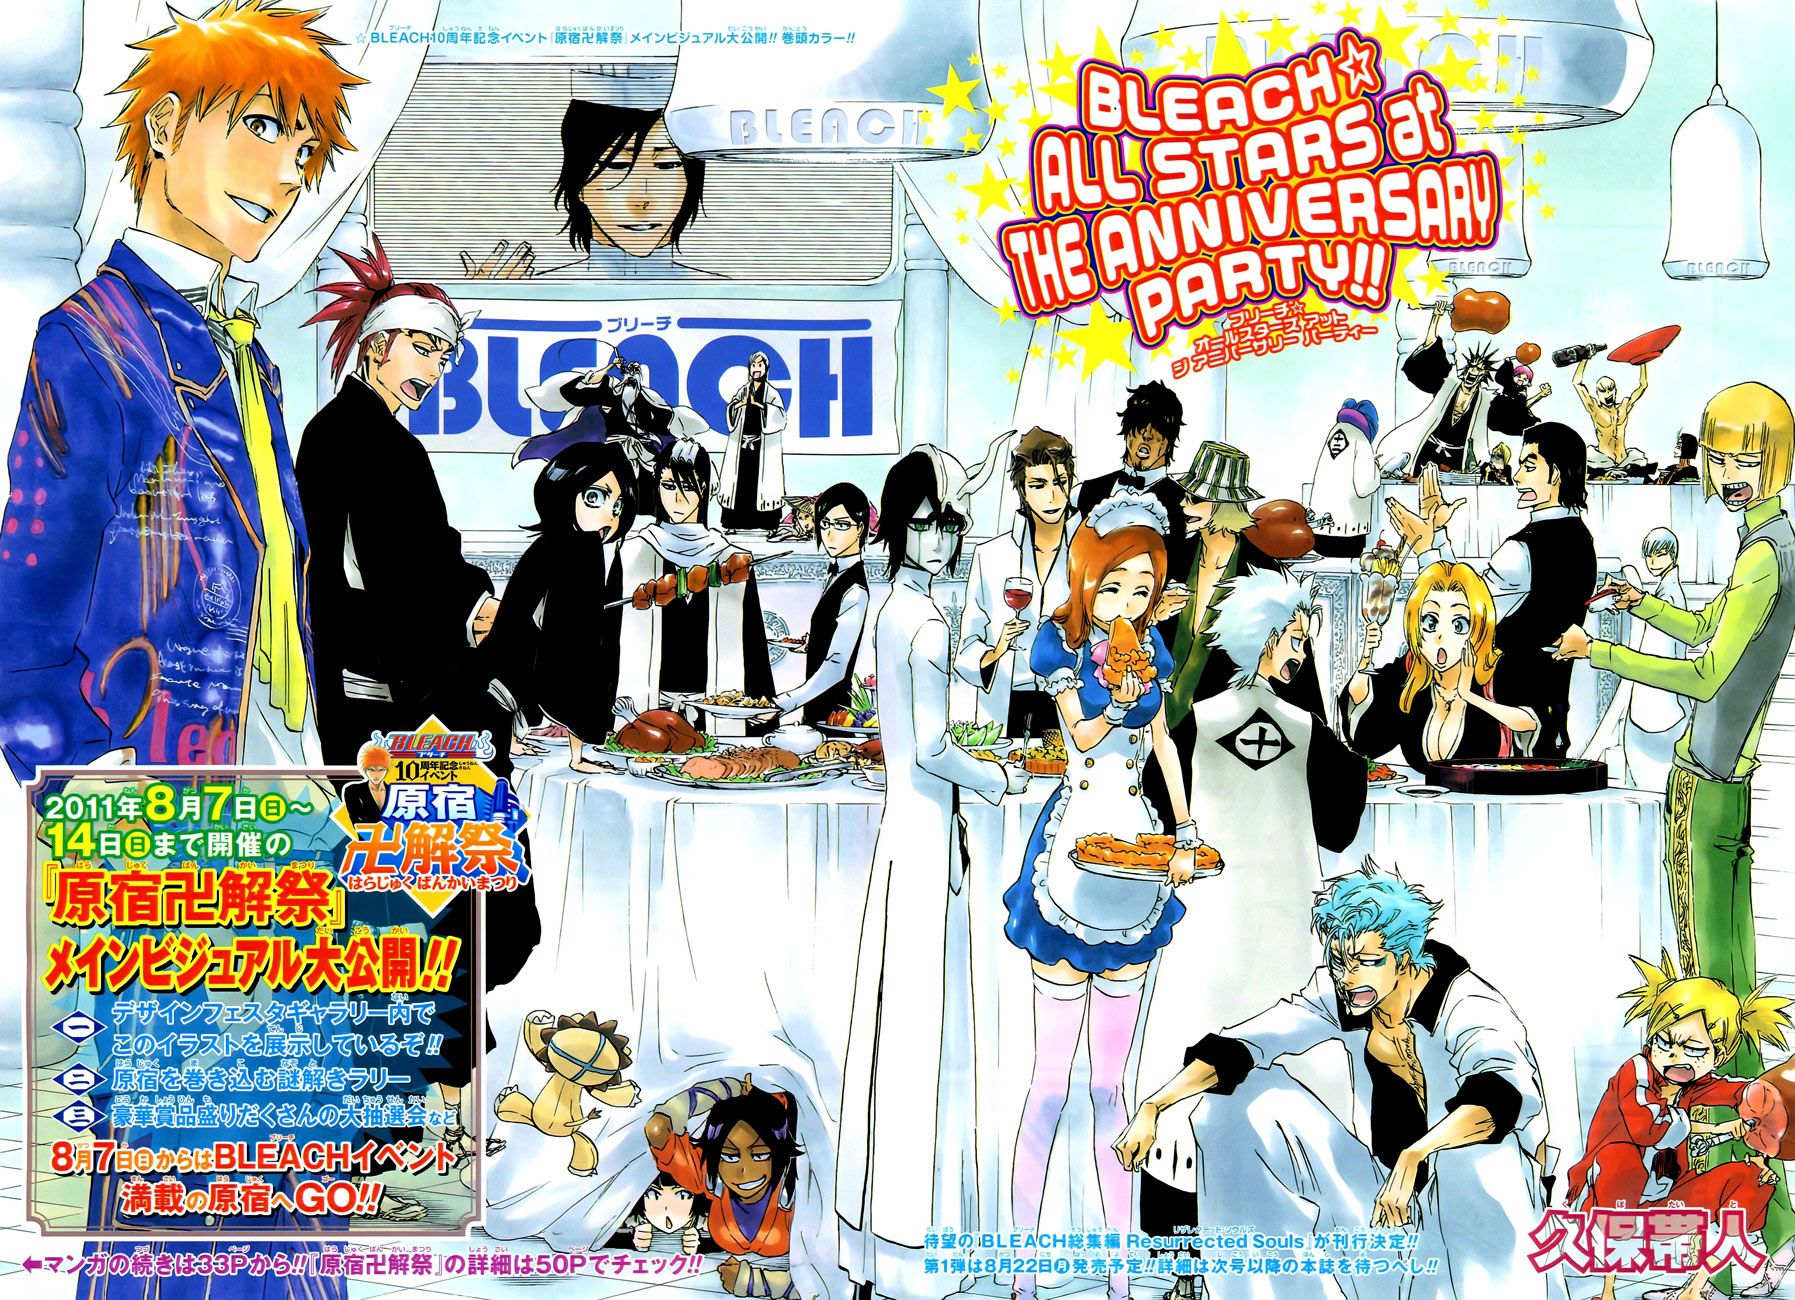 Colored manga websites - Bleach Anniversary Colour Spread The Bleach Cast